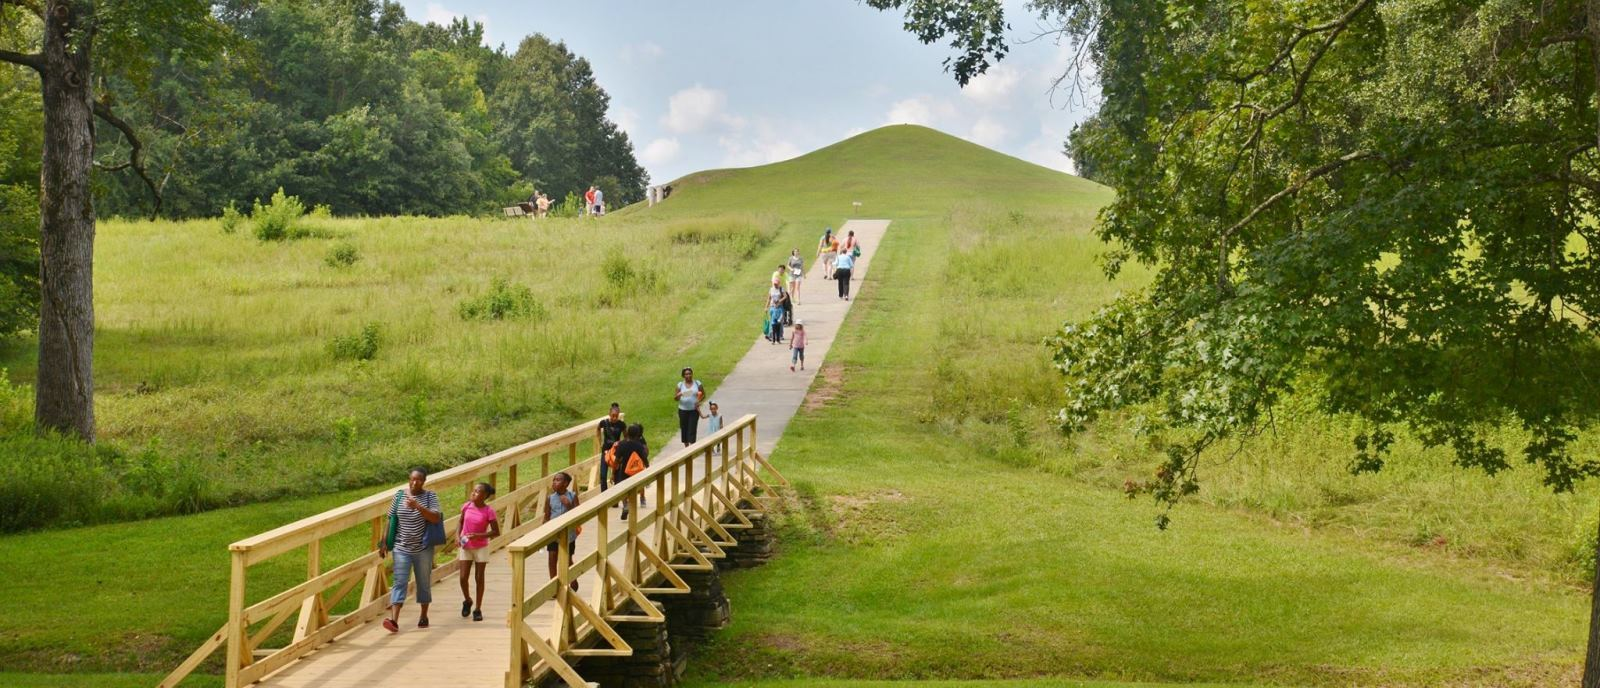 Ocmulgee Mounds National Historical Park in Macon, Georgia